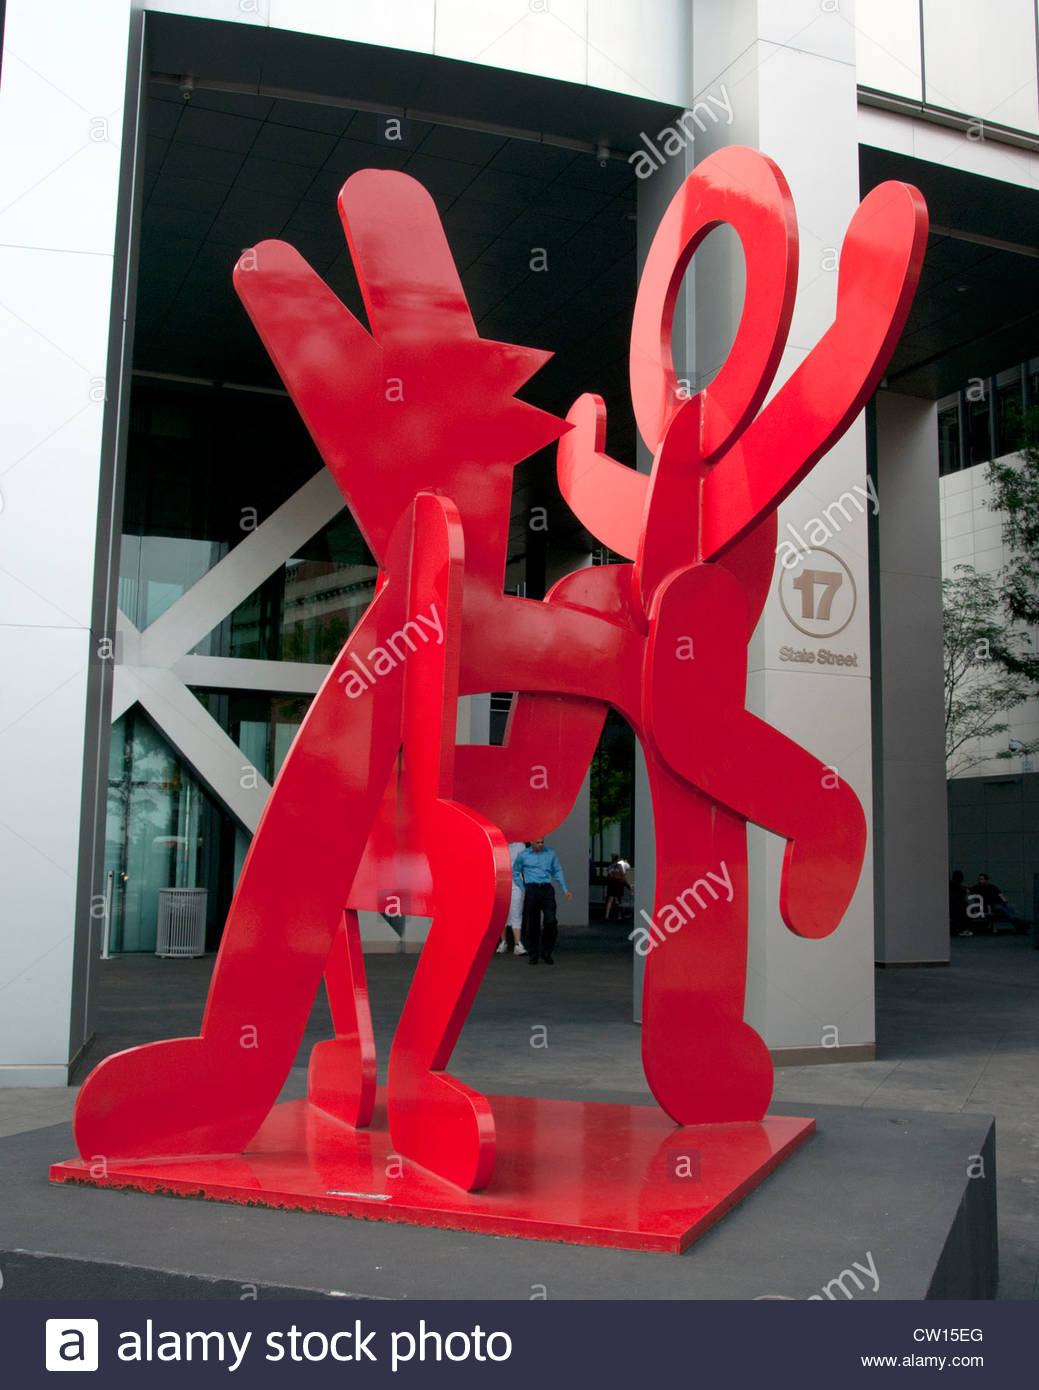 Two dancing figures 1989  Manhattan New York City Keith Haring 1958-1980  American United States of America - Stock Image